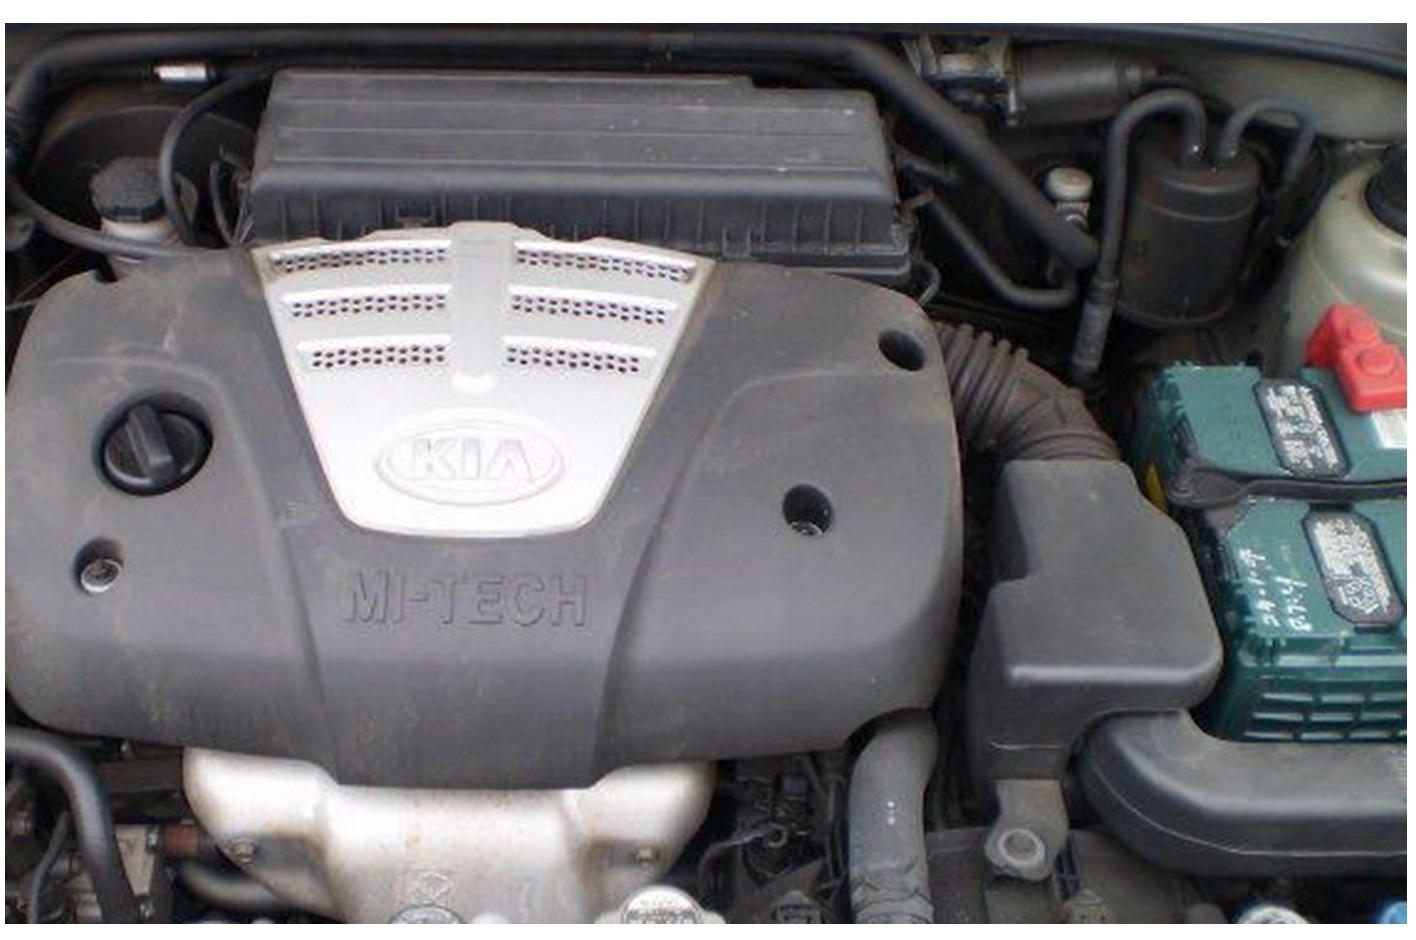 Wiring Diagram 2001 Kia Rio Data Engine Intake Library For 2010 Click Image